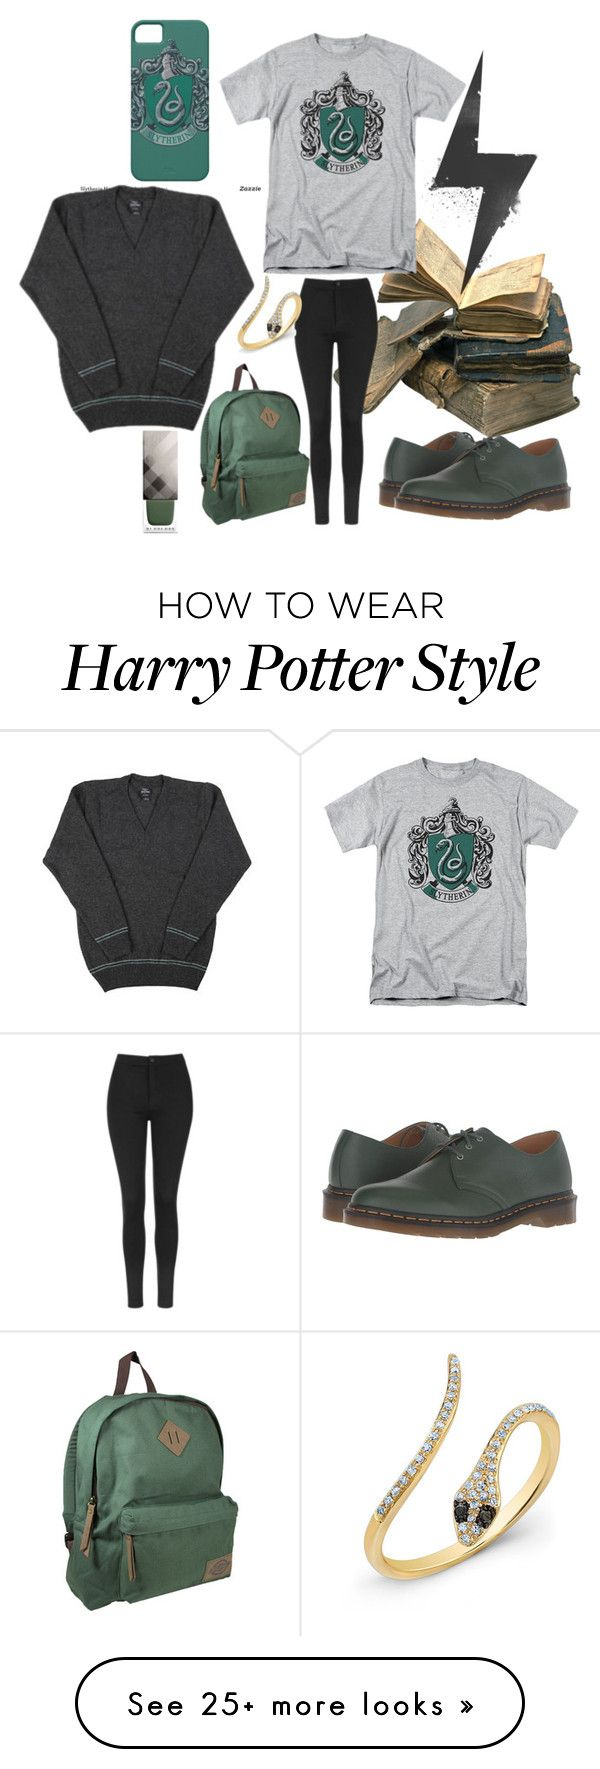 """""""Slytherin"""" by chantal-07 on Polyvore featuring Topshop, Anne Sisteron, Dr. Martens, Dickies, Burberry, harrypotter, potterhead, slytherin, hogwarts and GREEN"""